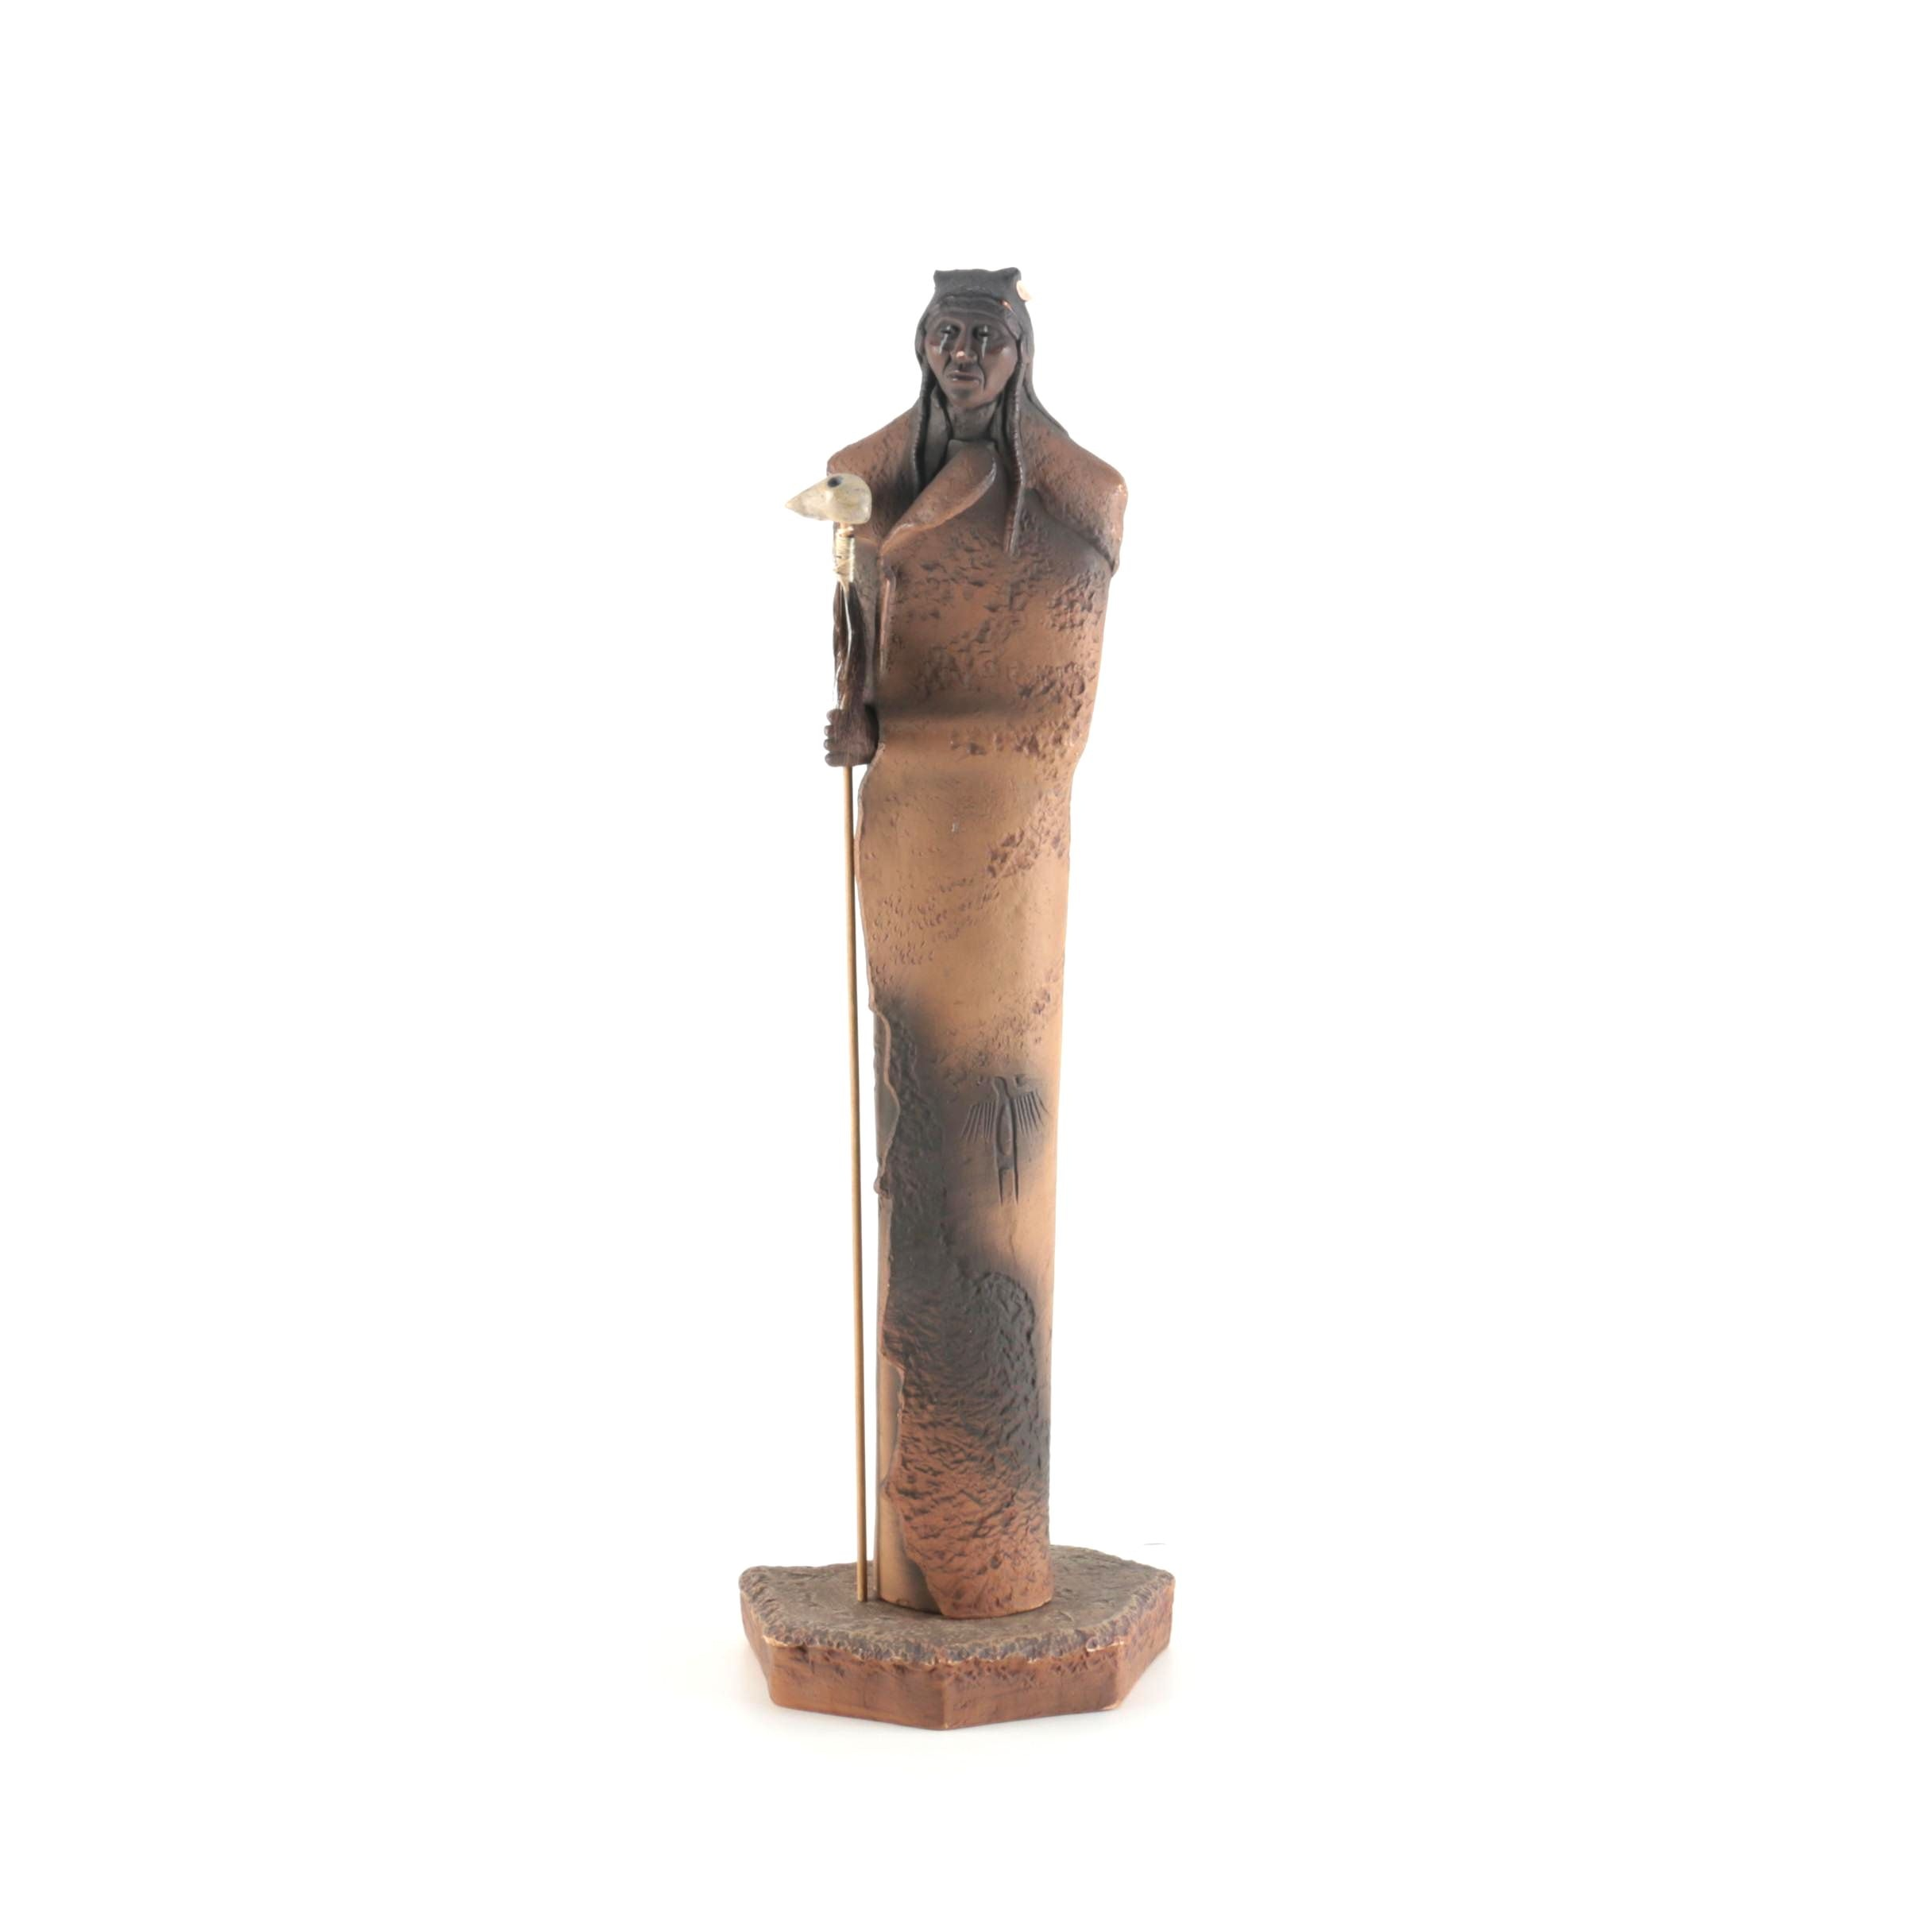 Cast Statuette of a Native American Figure